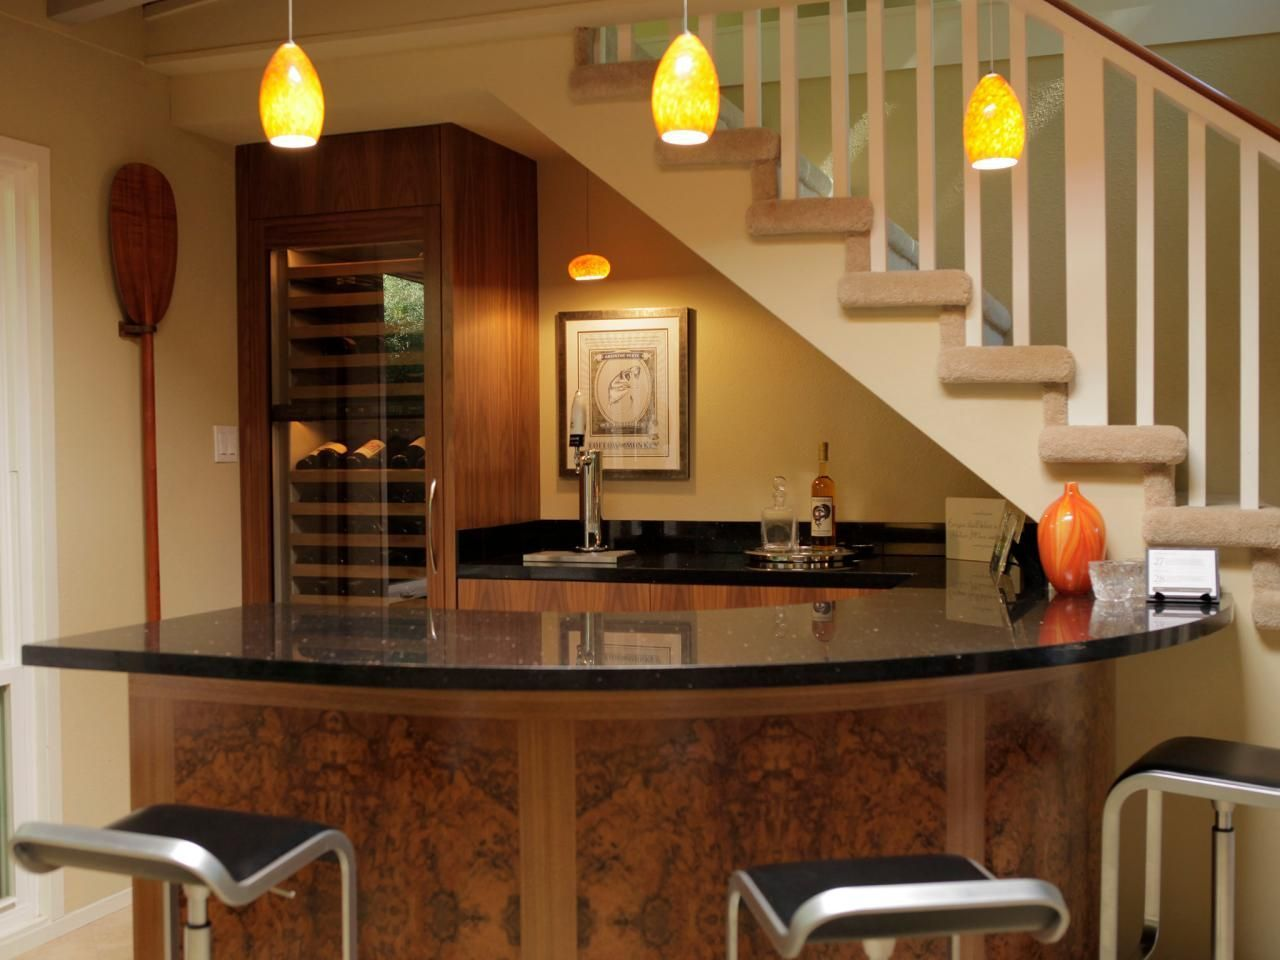 Explore basement bar ideas and designs at